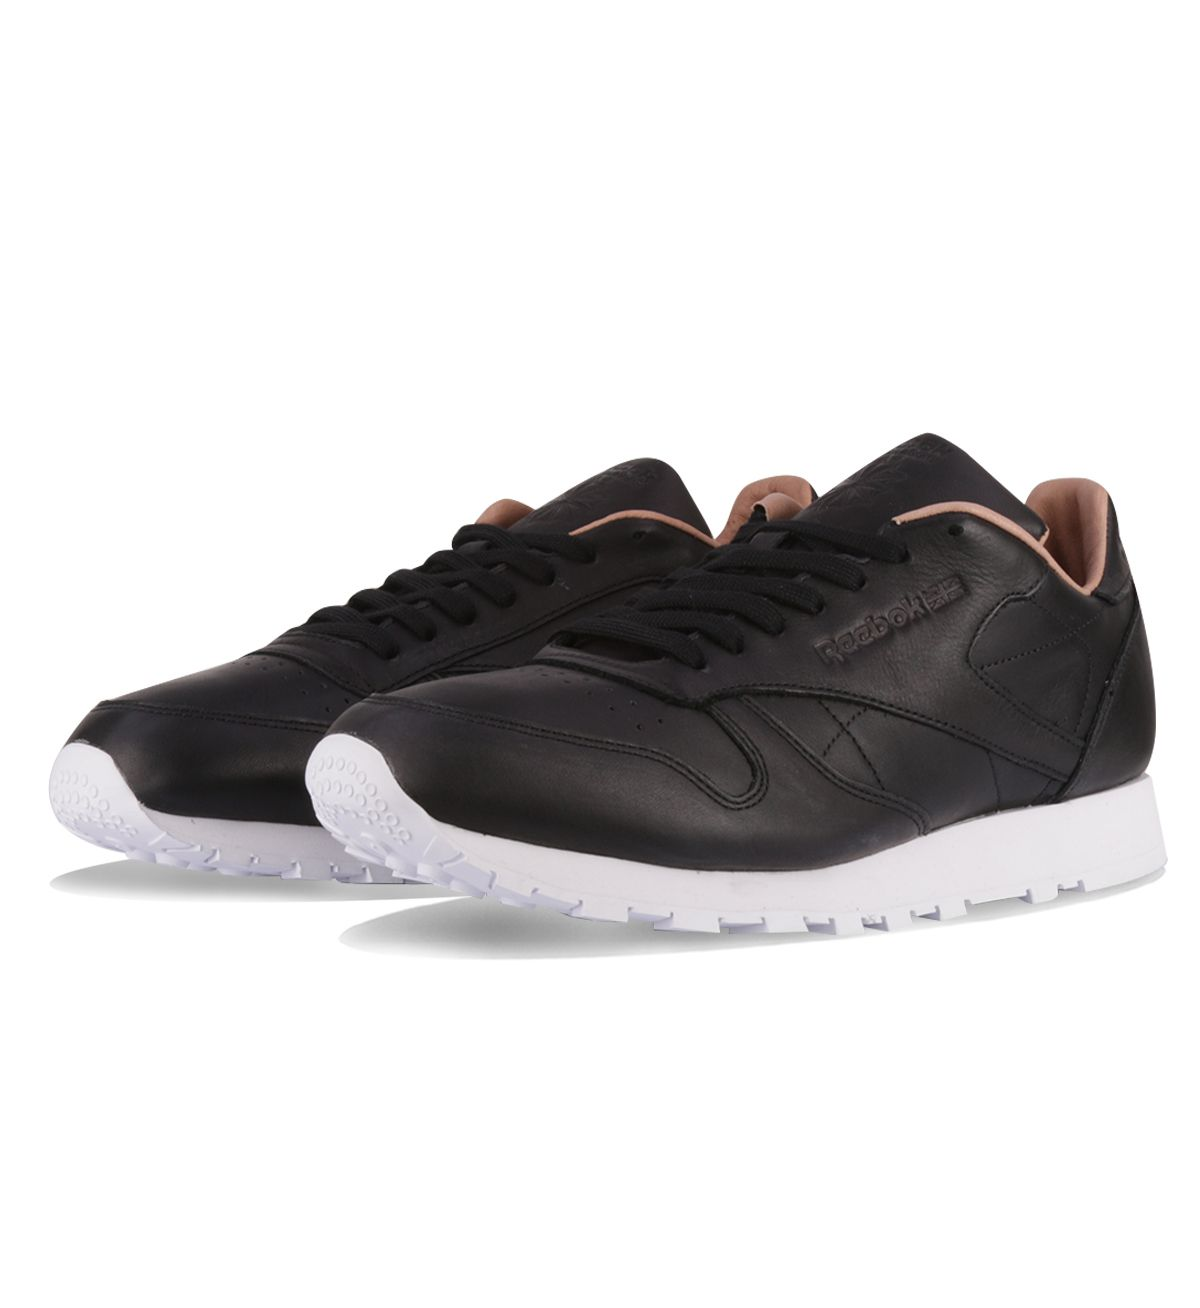 Reebok CL Leather PN Black   White - Reebok These Reebok Classic Leather  PNs in black have premium leather uppers 057b24830